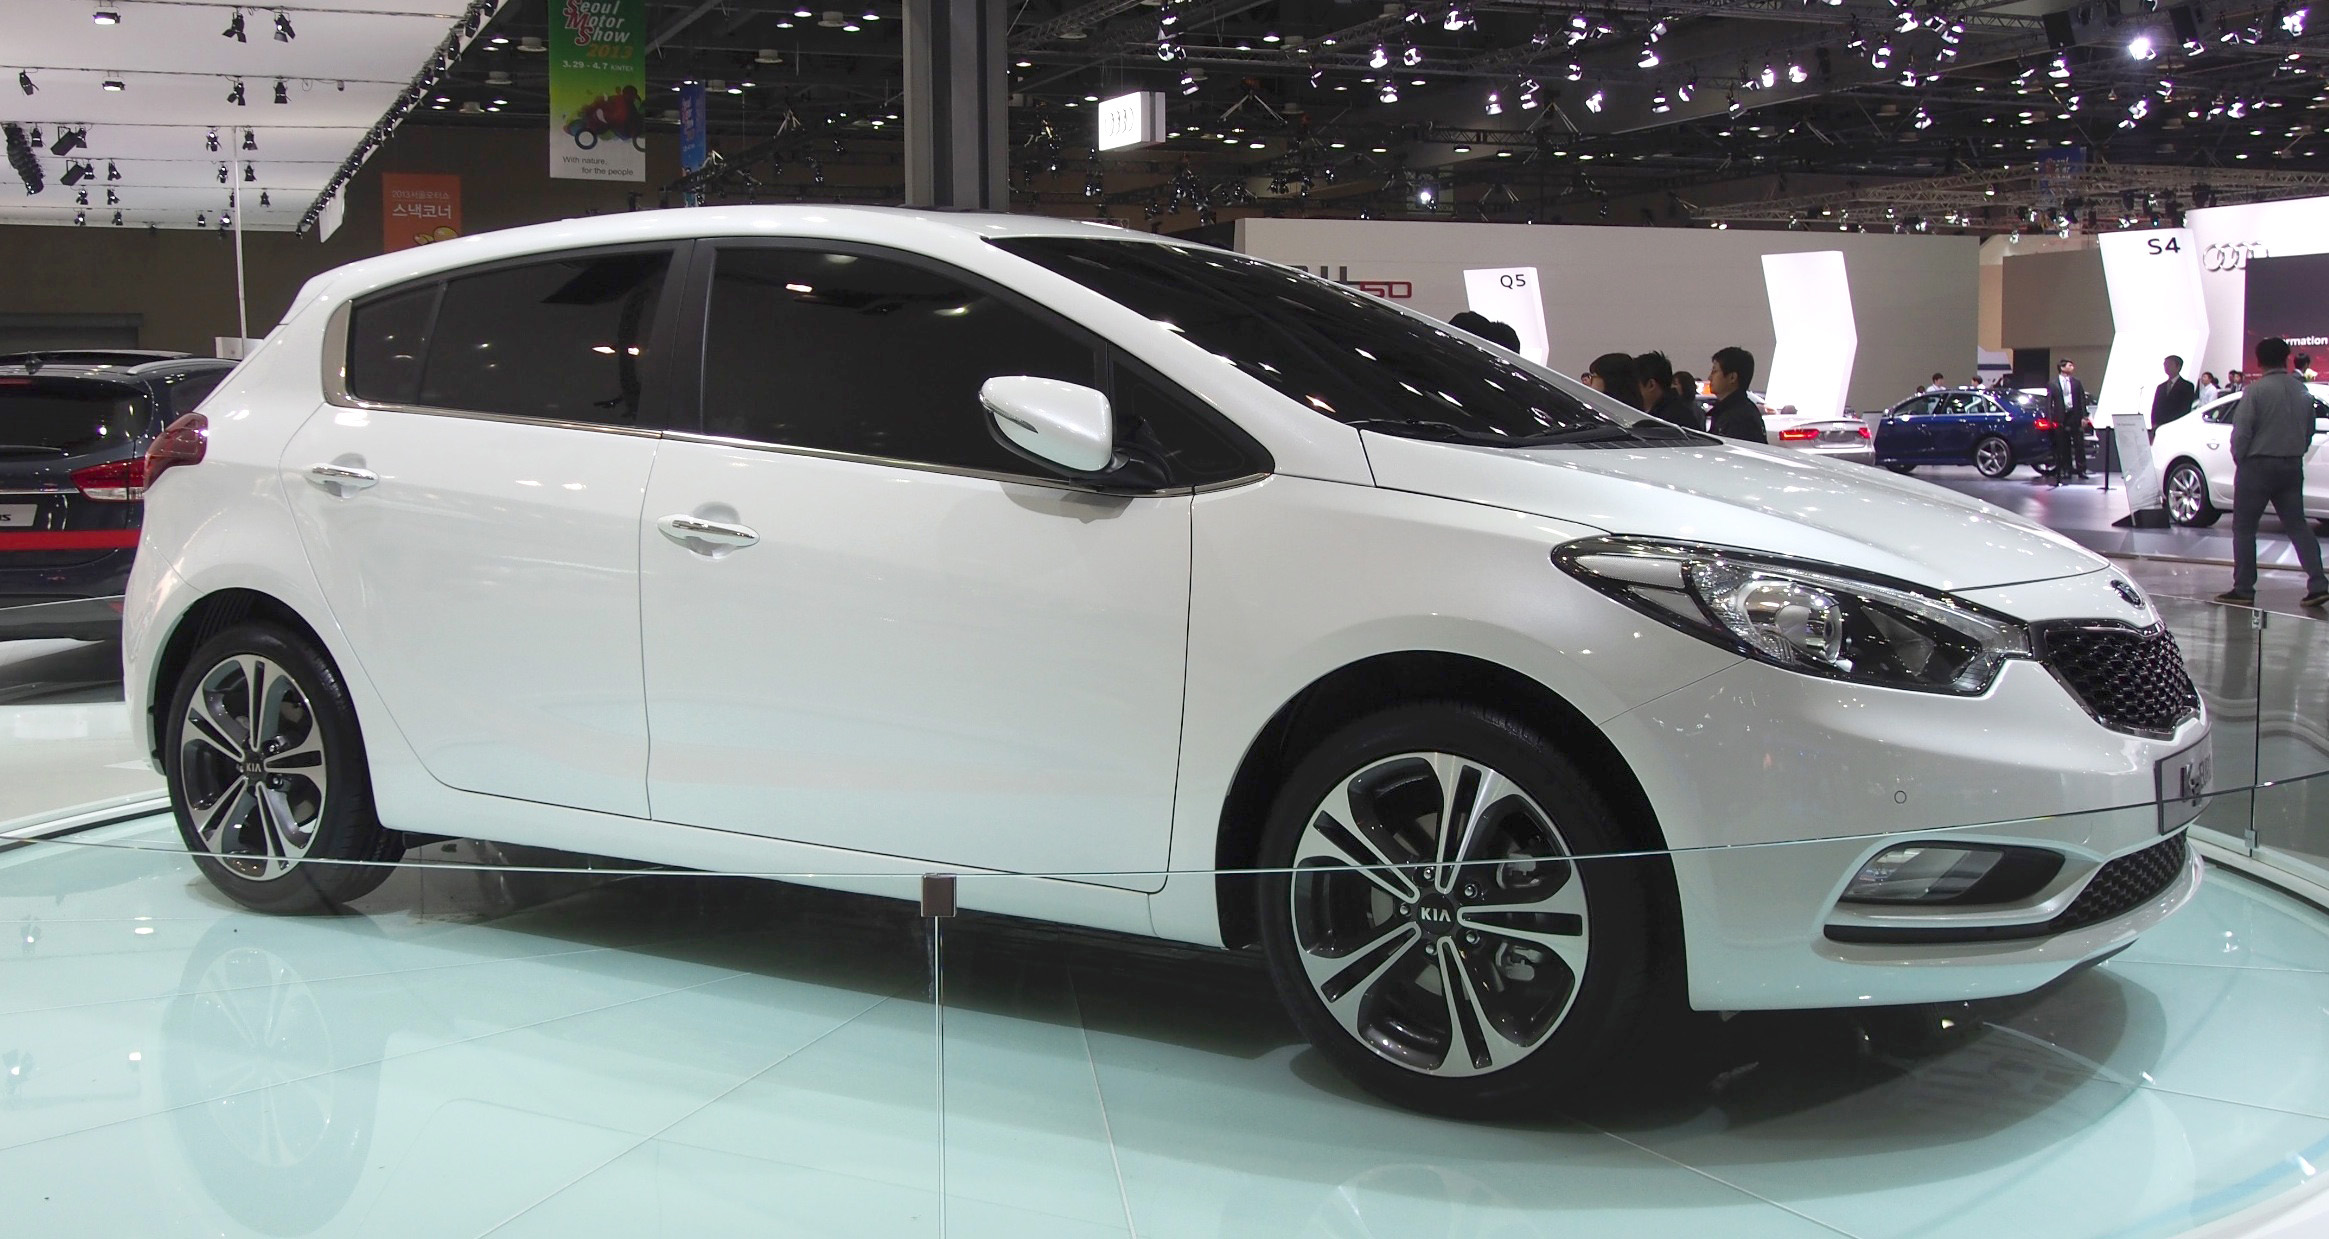 Kia Forte Hatchback Is Called The K3 Euro In Korea Image